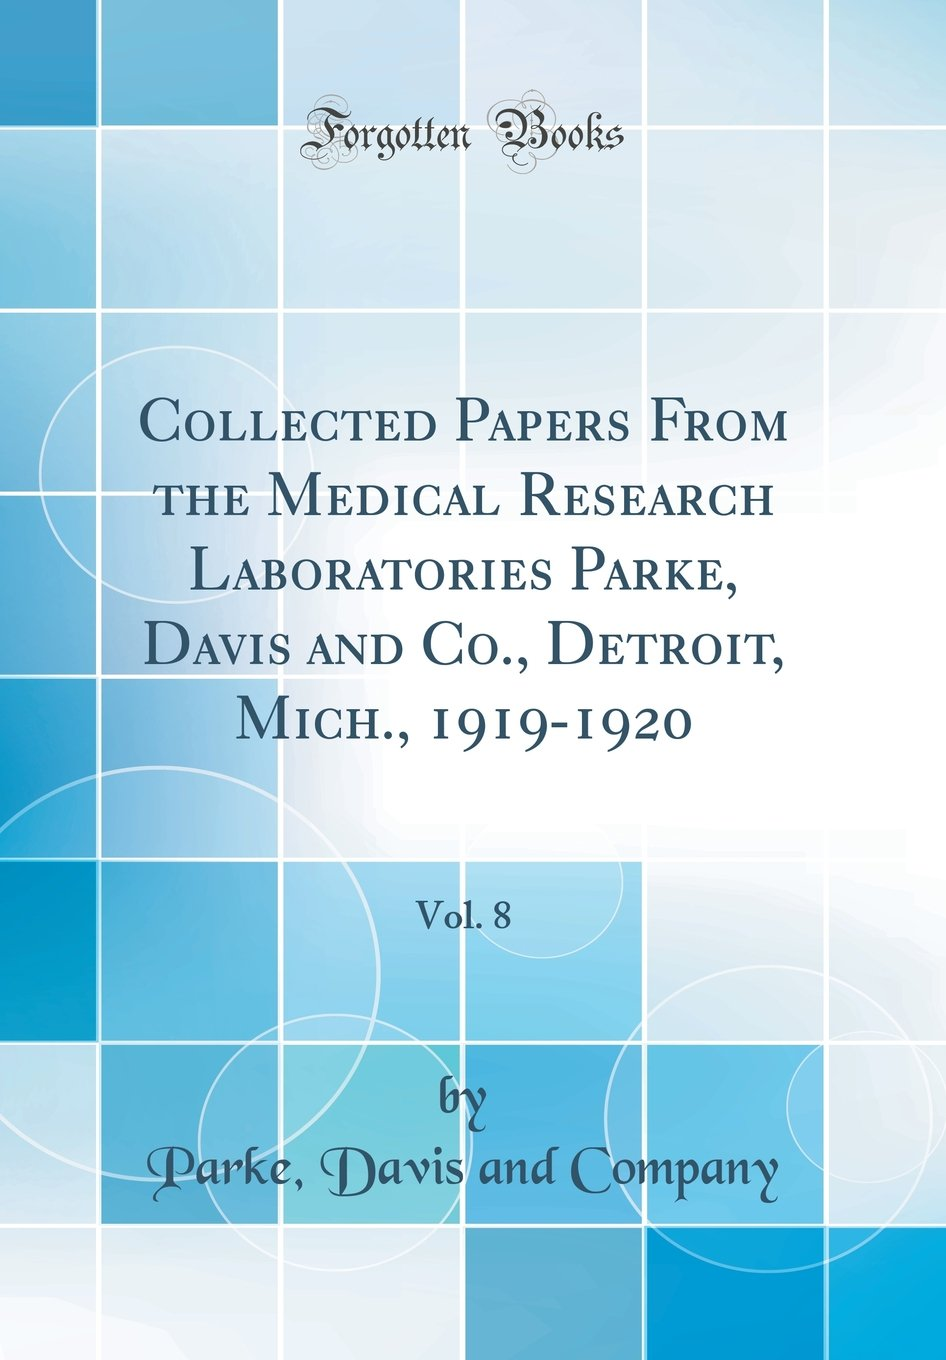 Download Collected Papers From the Medical Research Laboratories Parke, Davis and Co., Detroit, Mich., 1919-1920, Vol. 8 (Classic Reprint) ebook